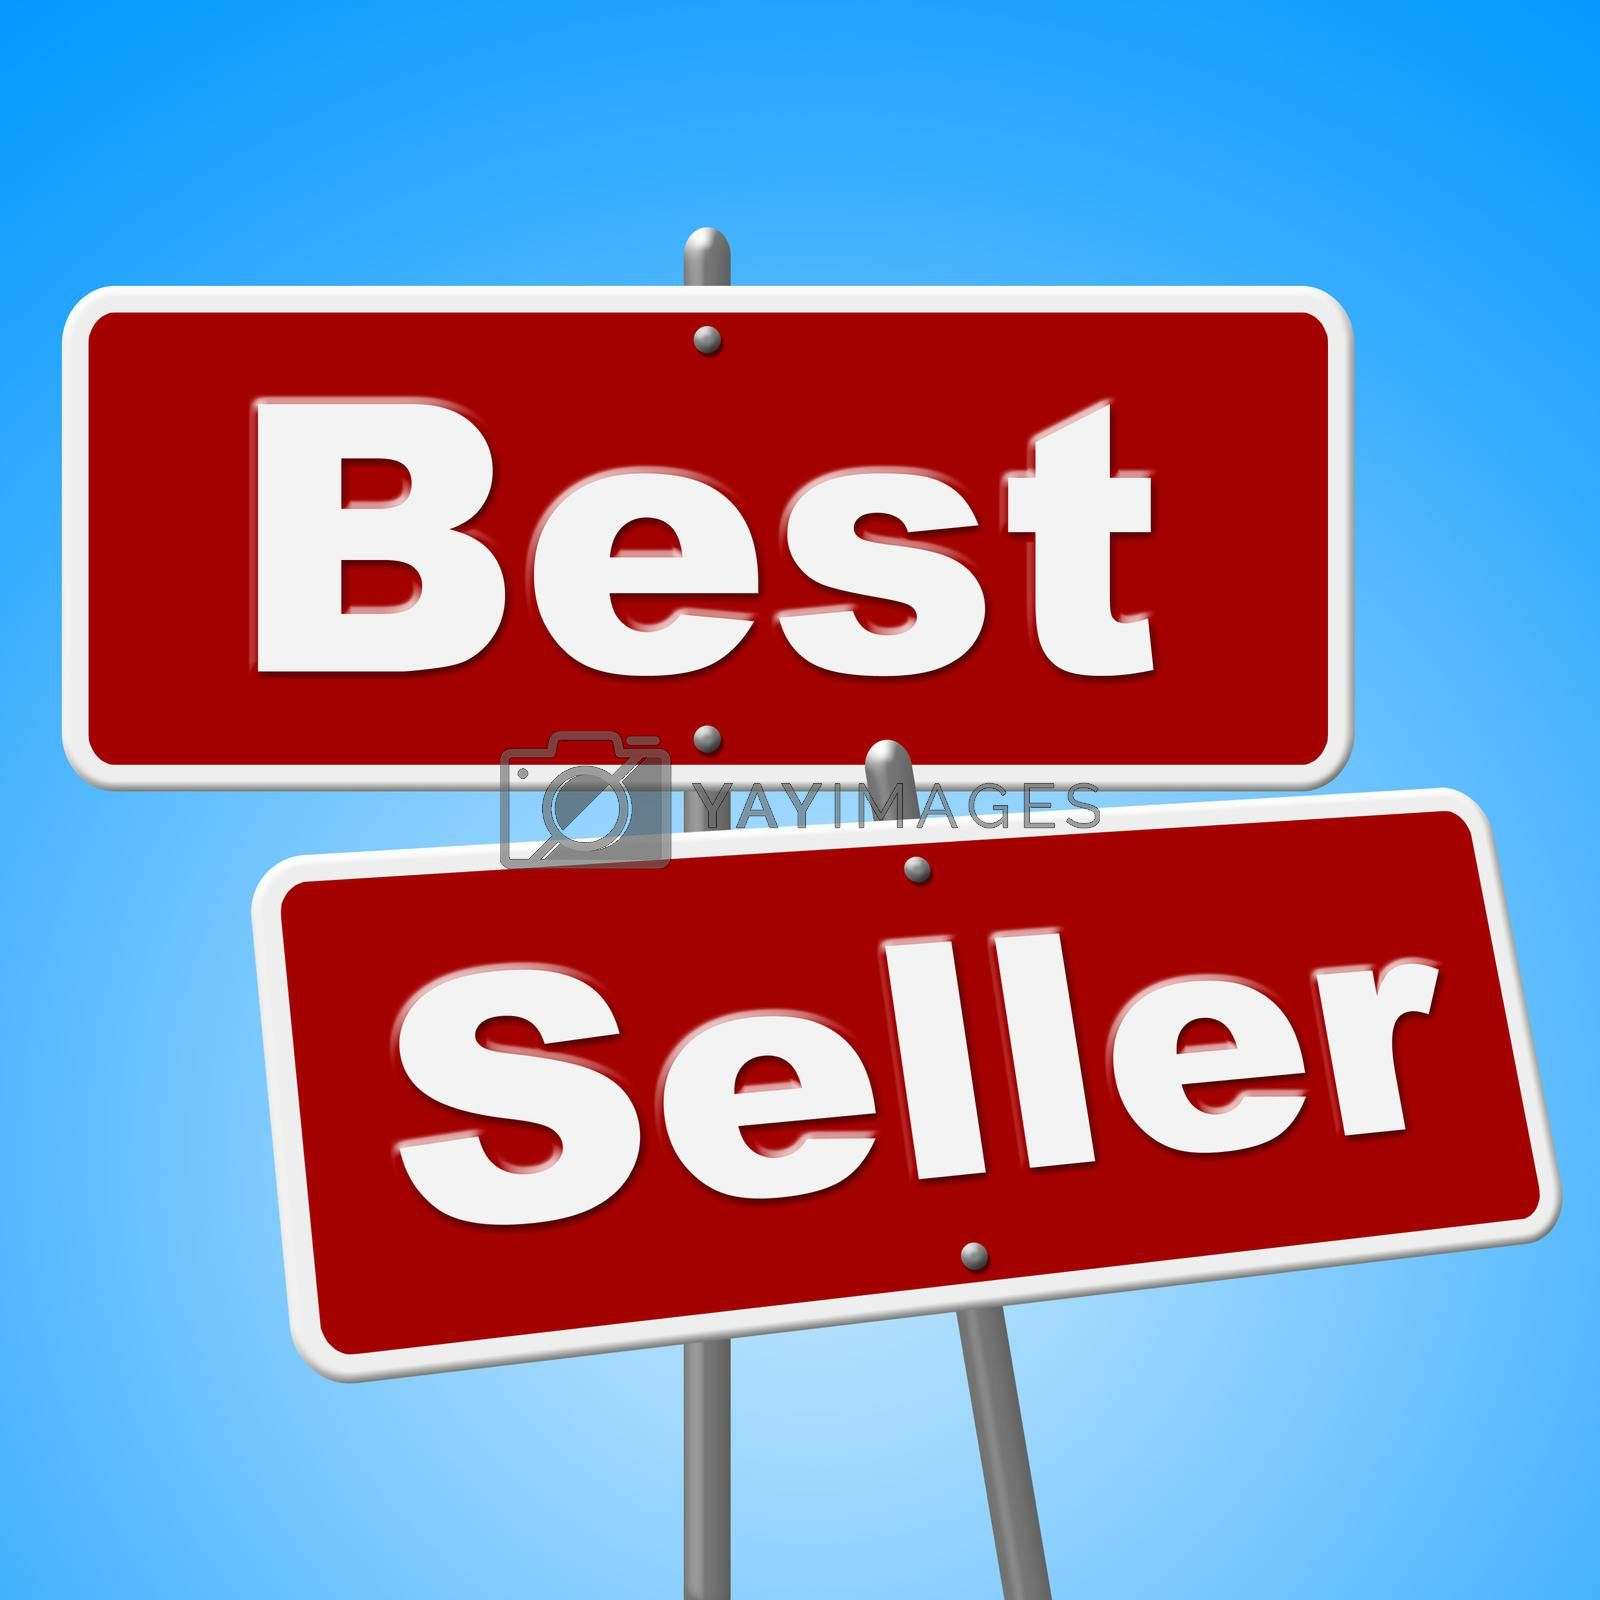 Best Seller Signs Means Vending Rated And Sold by stuartmiles